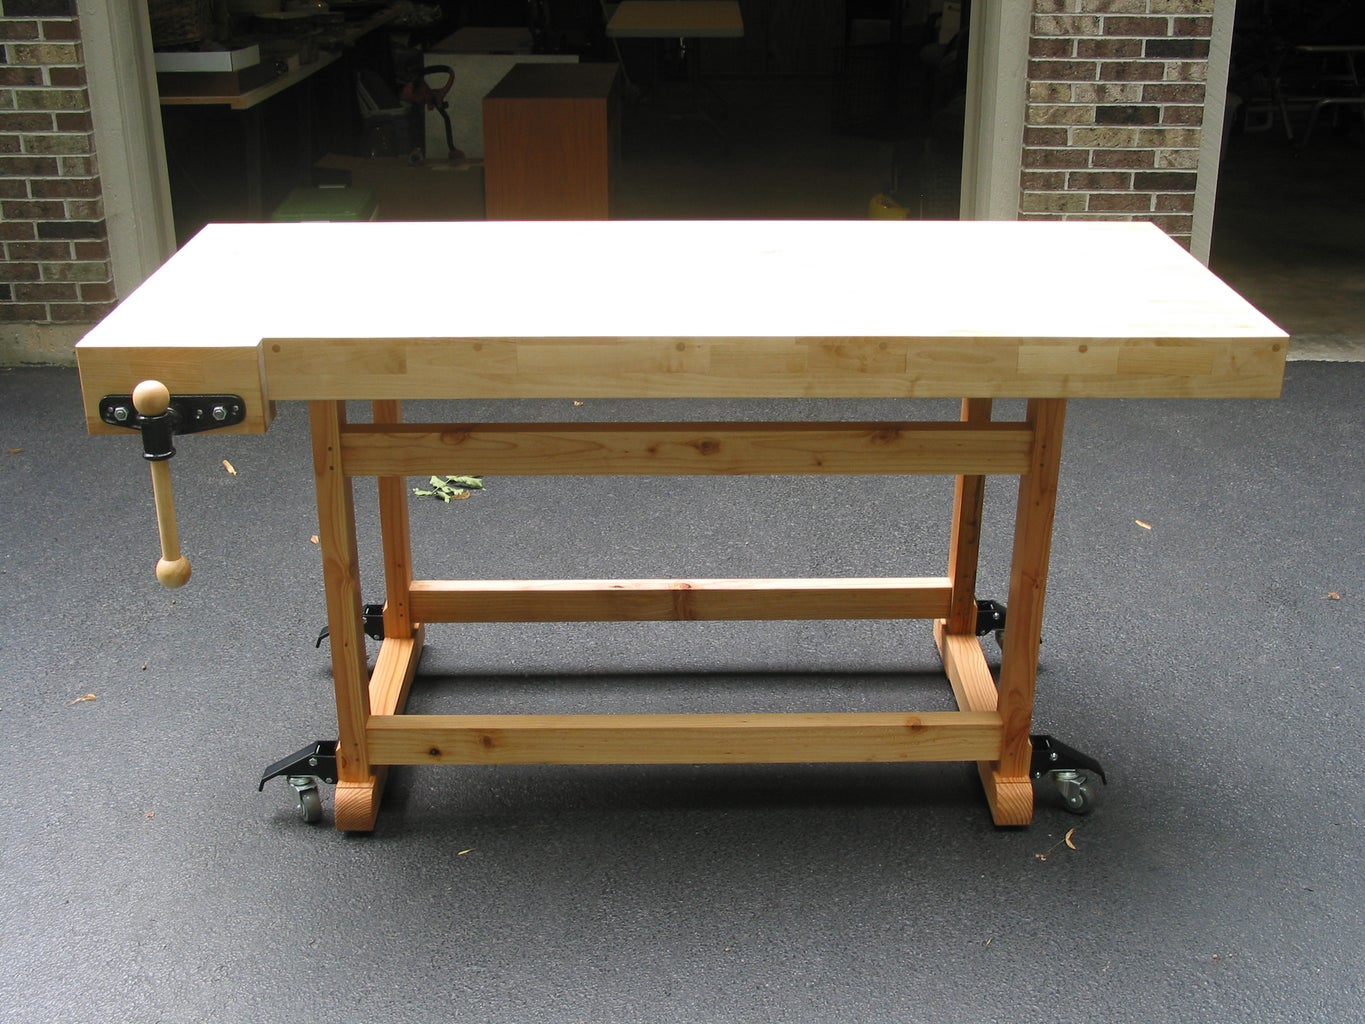 Using Basic Tools to Build This Project